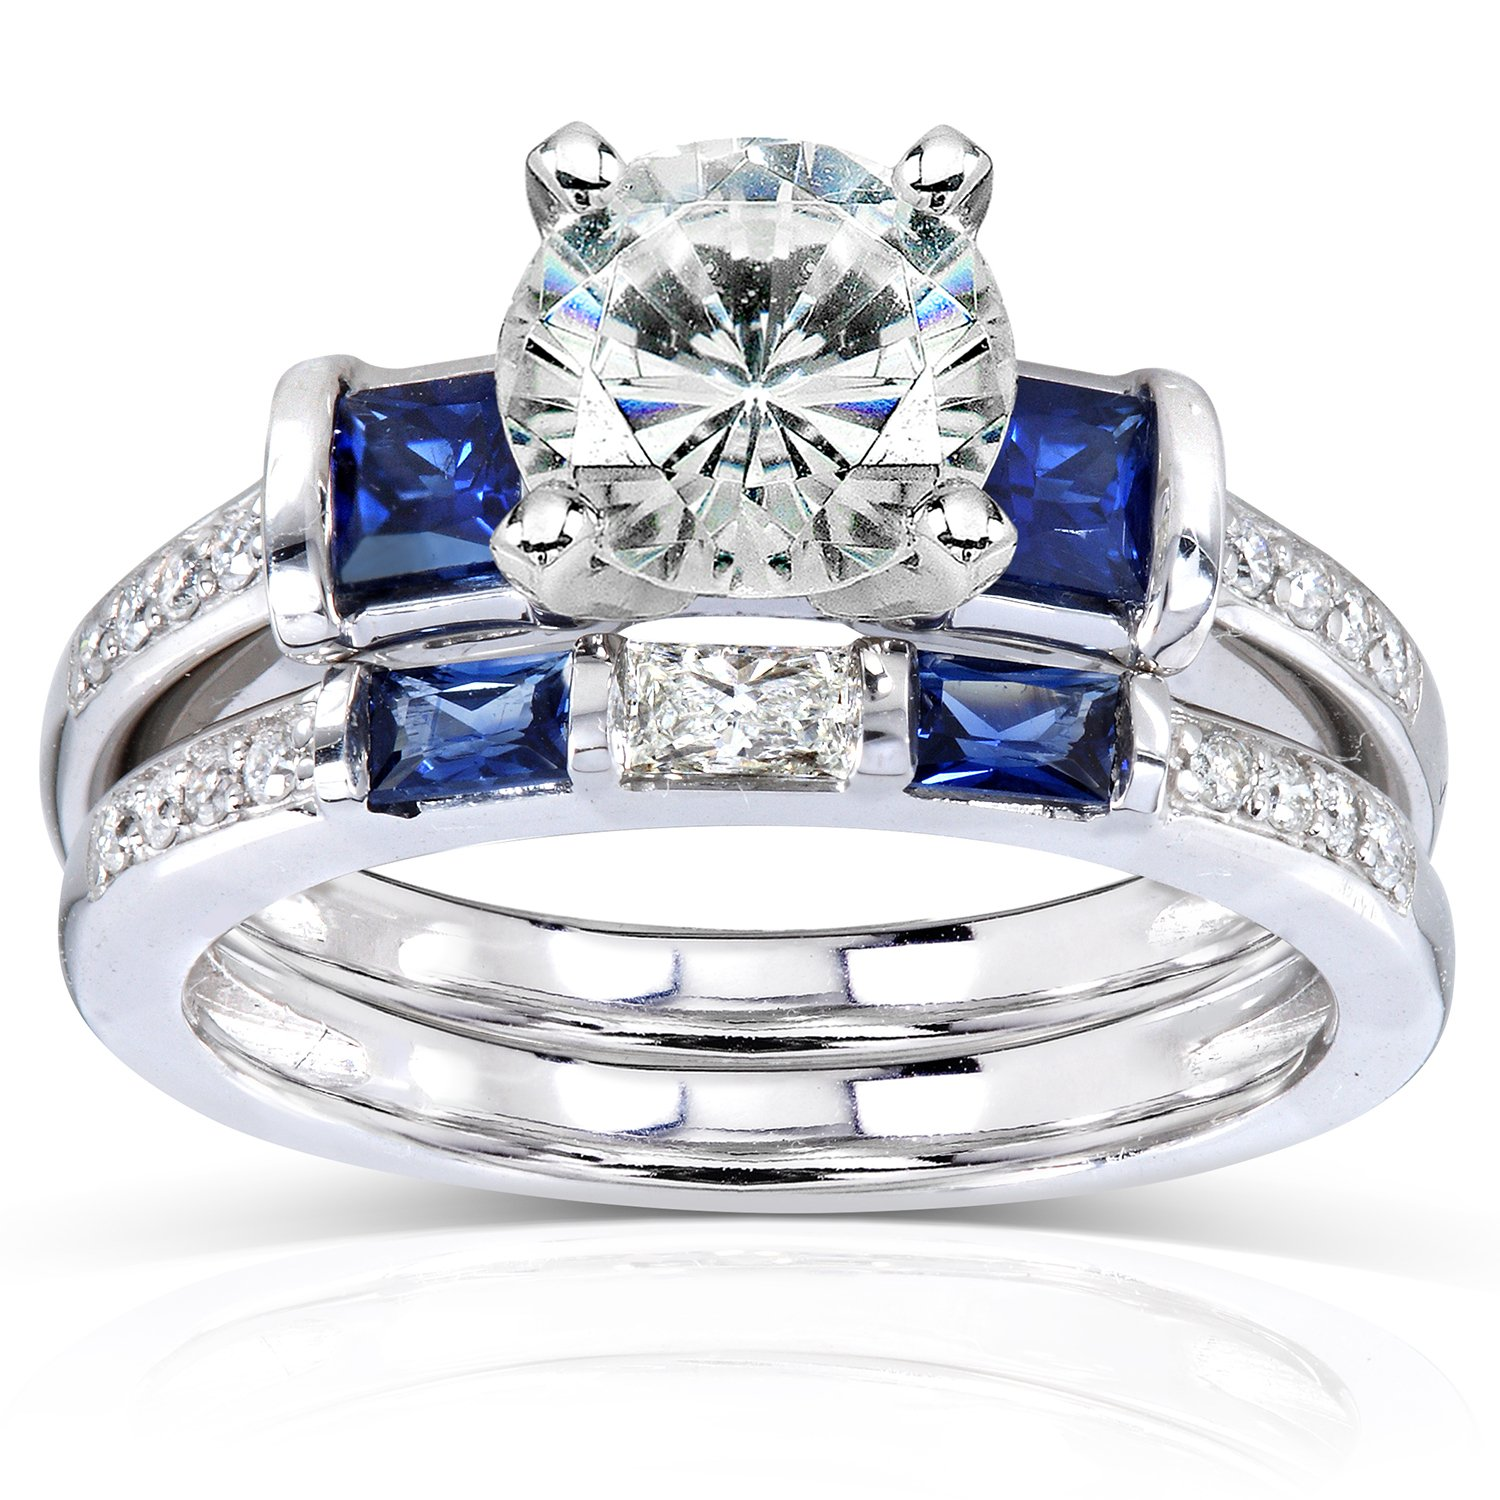 Forever One (D-F) Moissanite with Blue Sapphire & Diamond Bridal Ring Set 2 1/4 Carat (ctw) in 14k White Gold